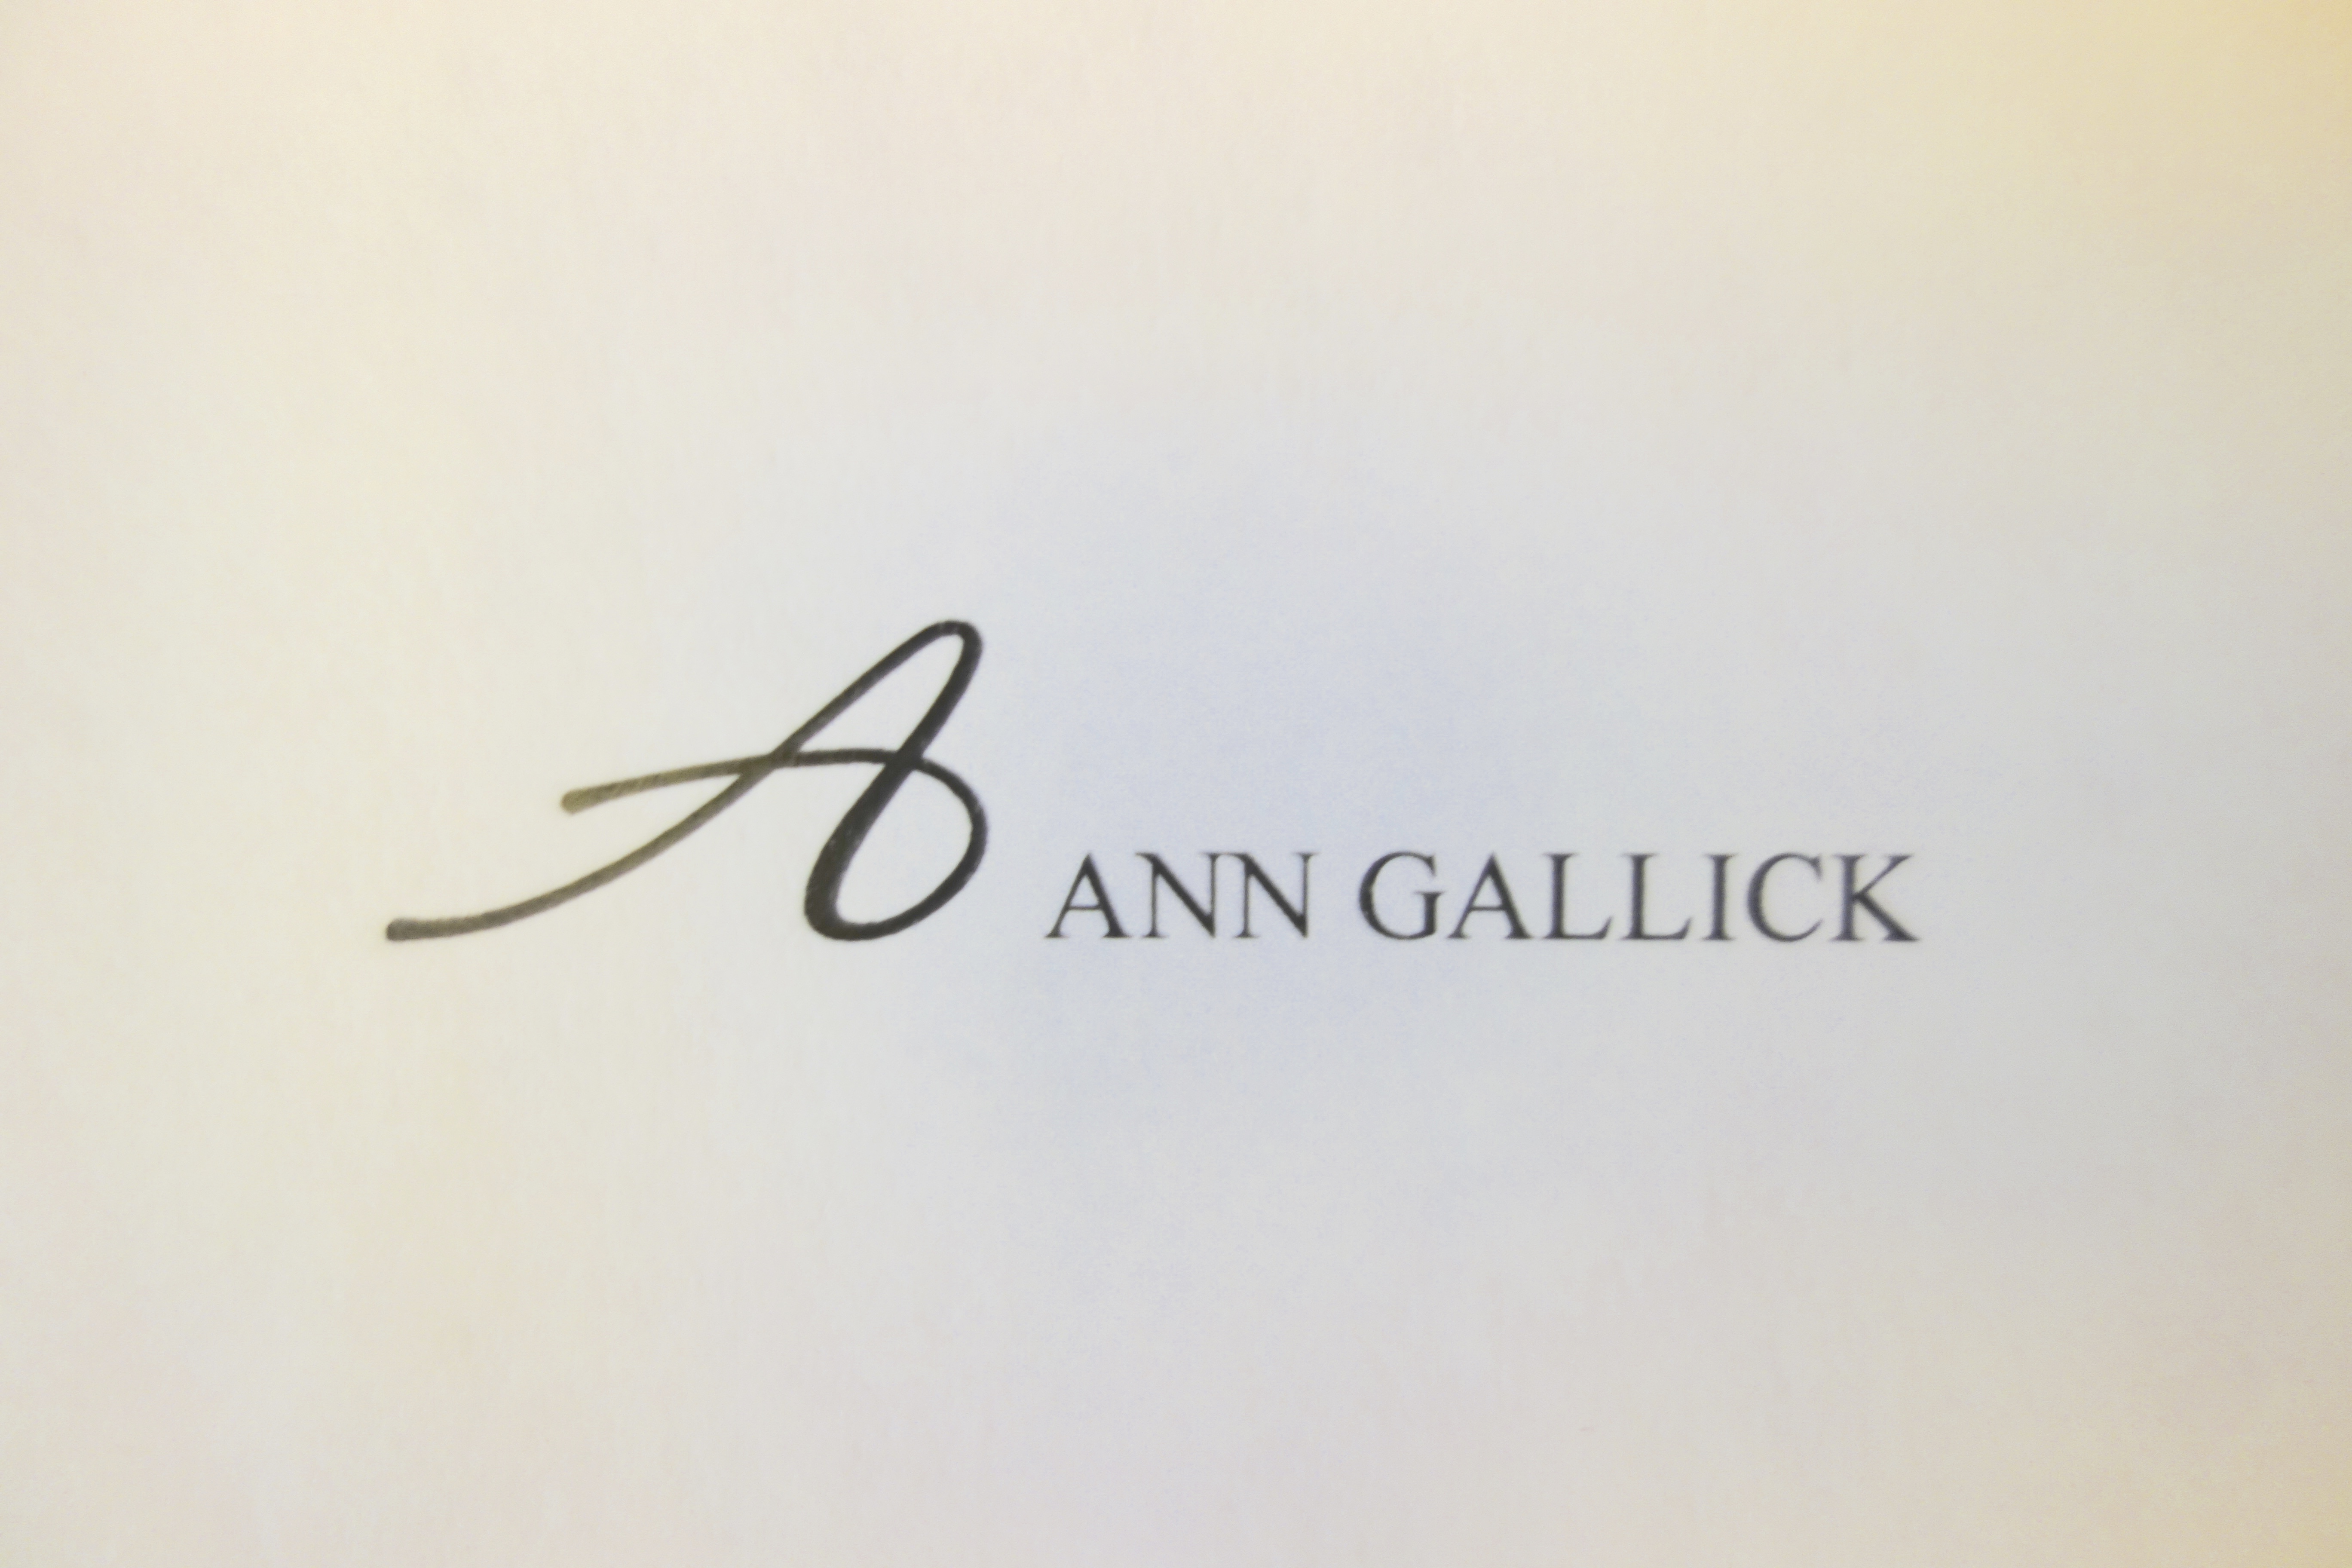 Ann Gallick's Signature